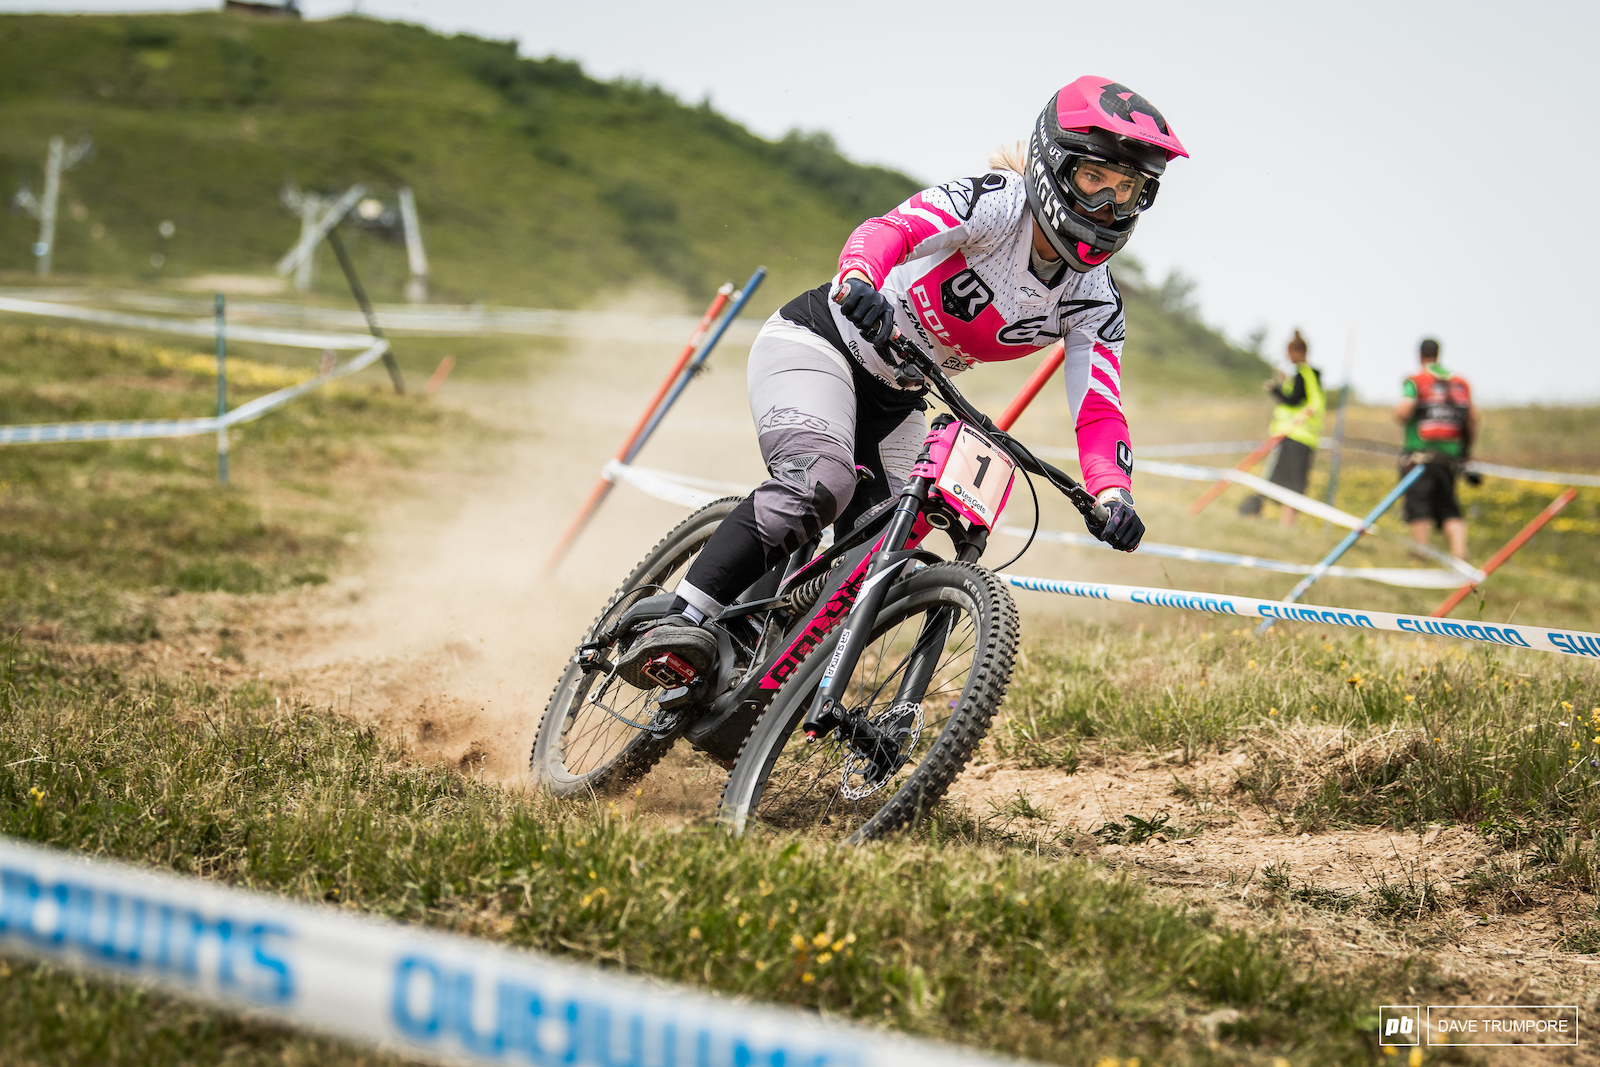 With Rachel Atherton out Tracey Hannah is firmly in command of the Wold Cup title chase.